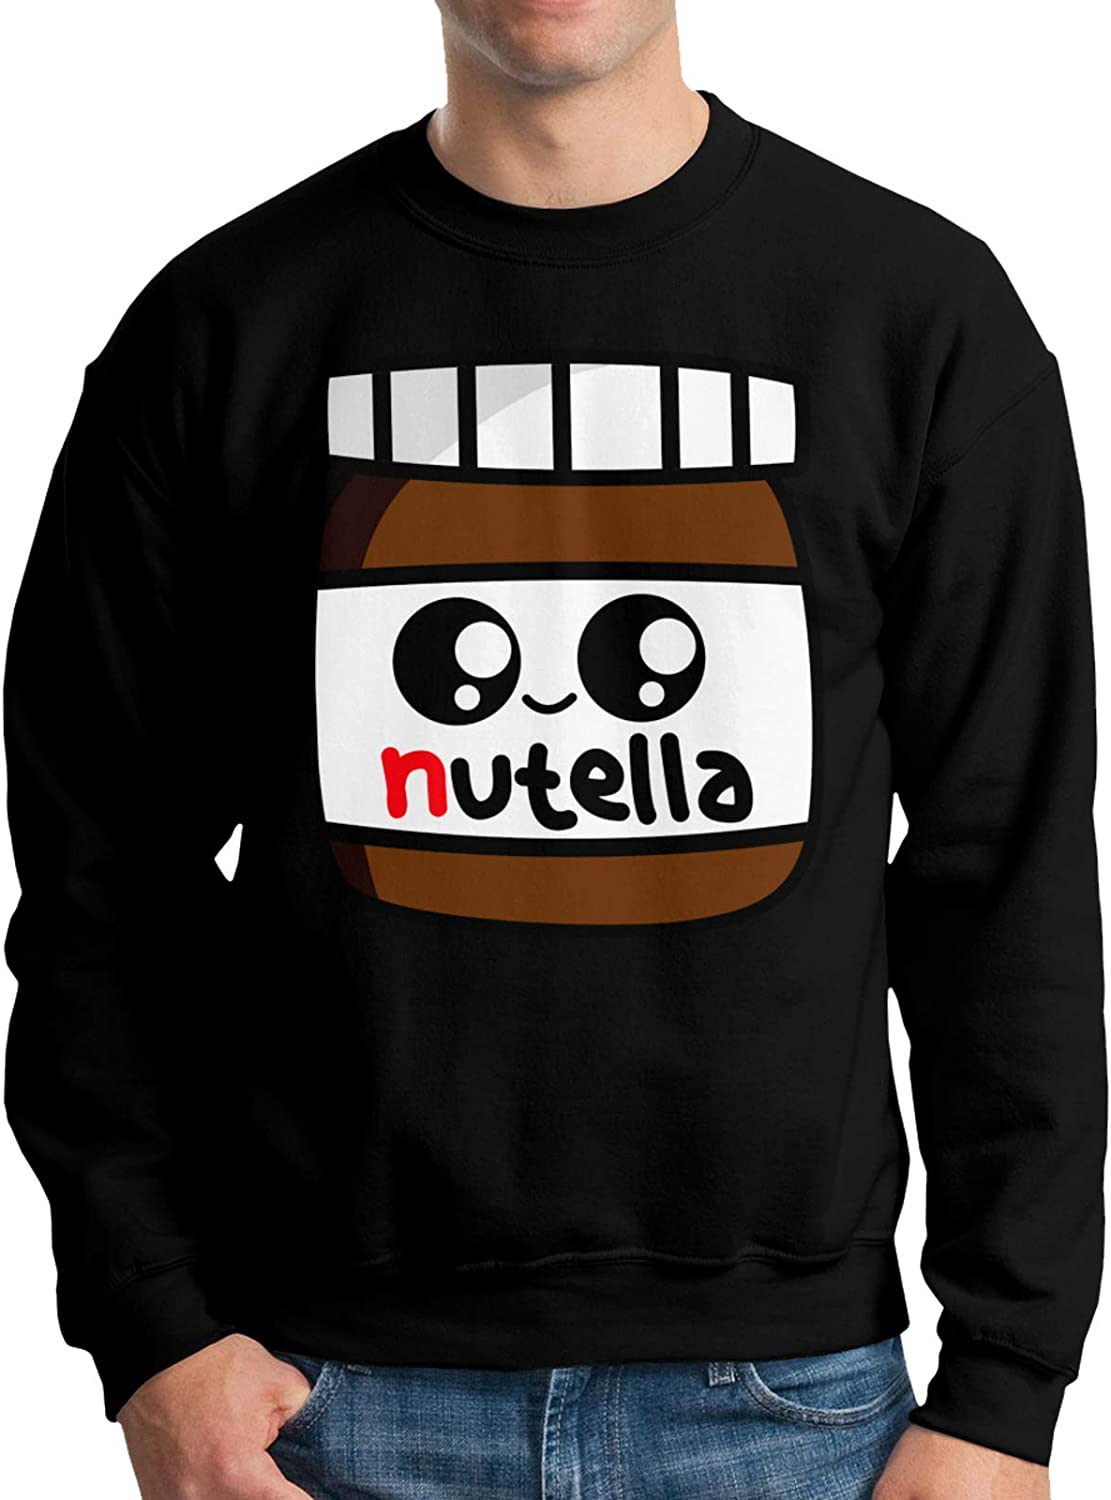 Ruby Fondos Tumblr Nutella1 Sweaters excellence Sweat Classic Dealing full price reduction Crewneck Tops